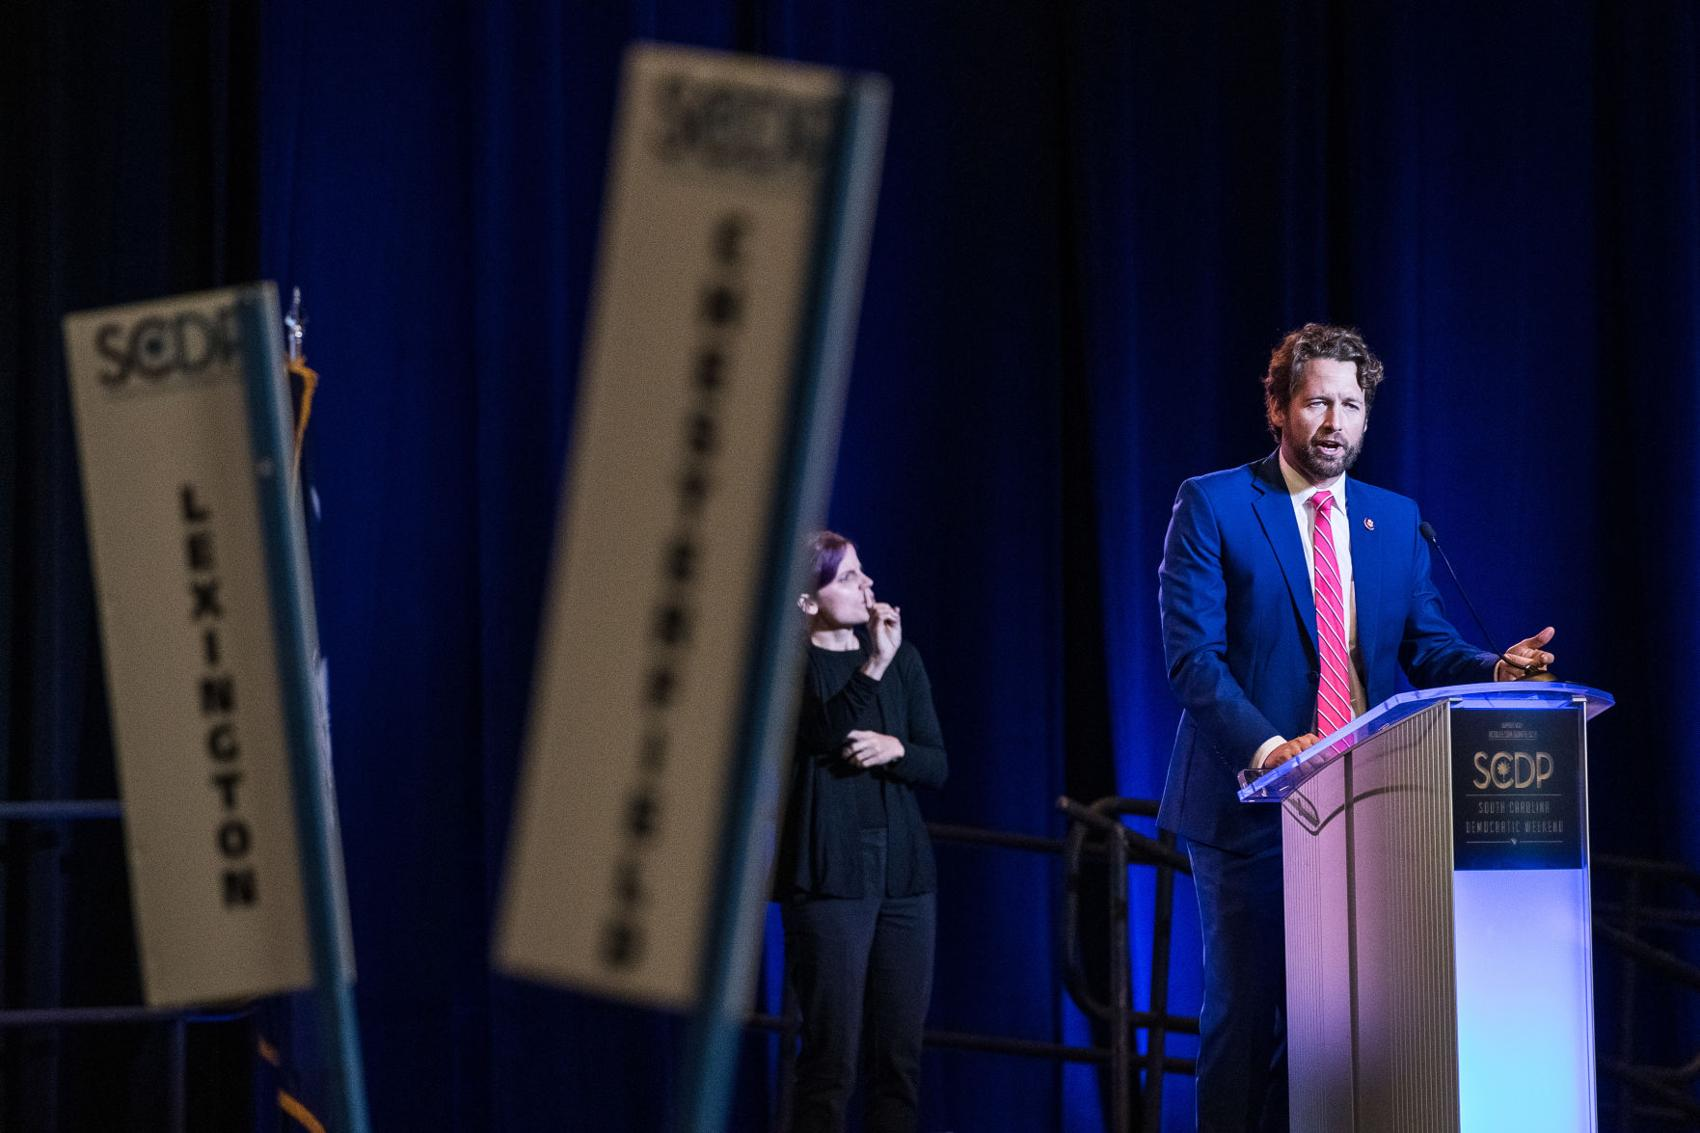 POST AND COURIER – Joe Cunningham extends cash lead, Nancy Mace tops GOP challengers in SC congressional race